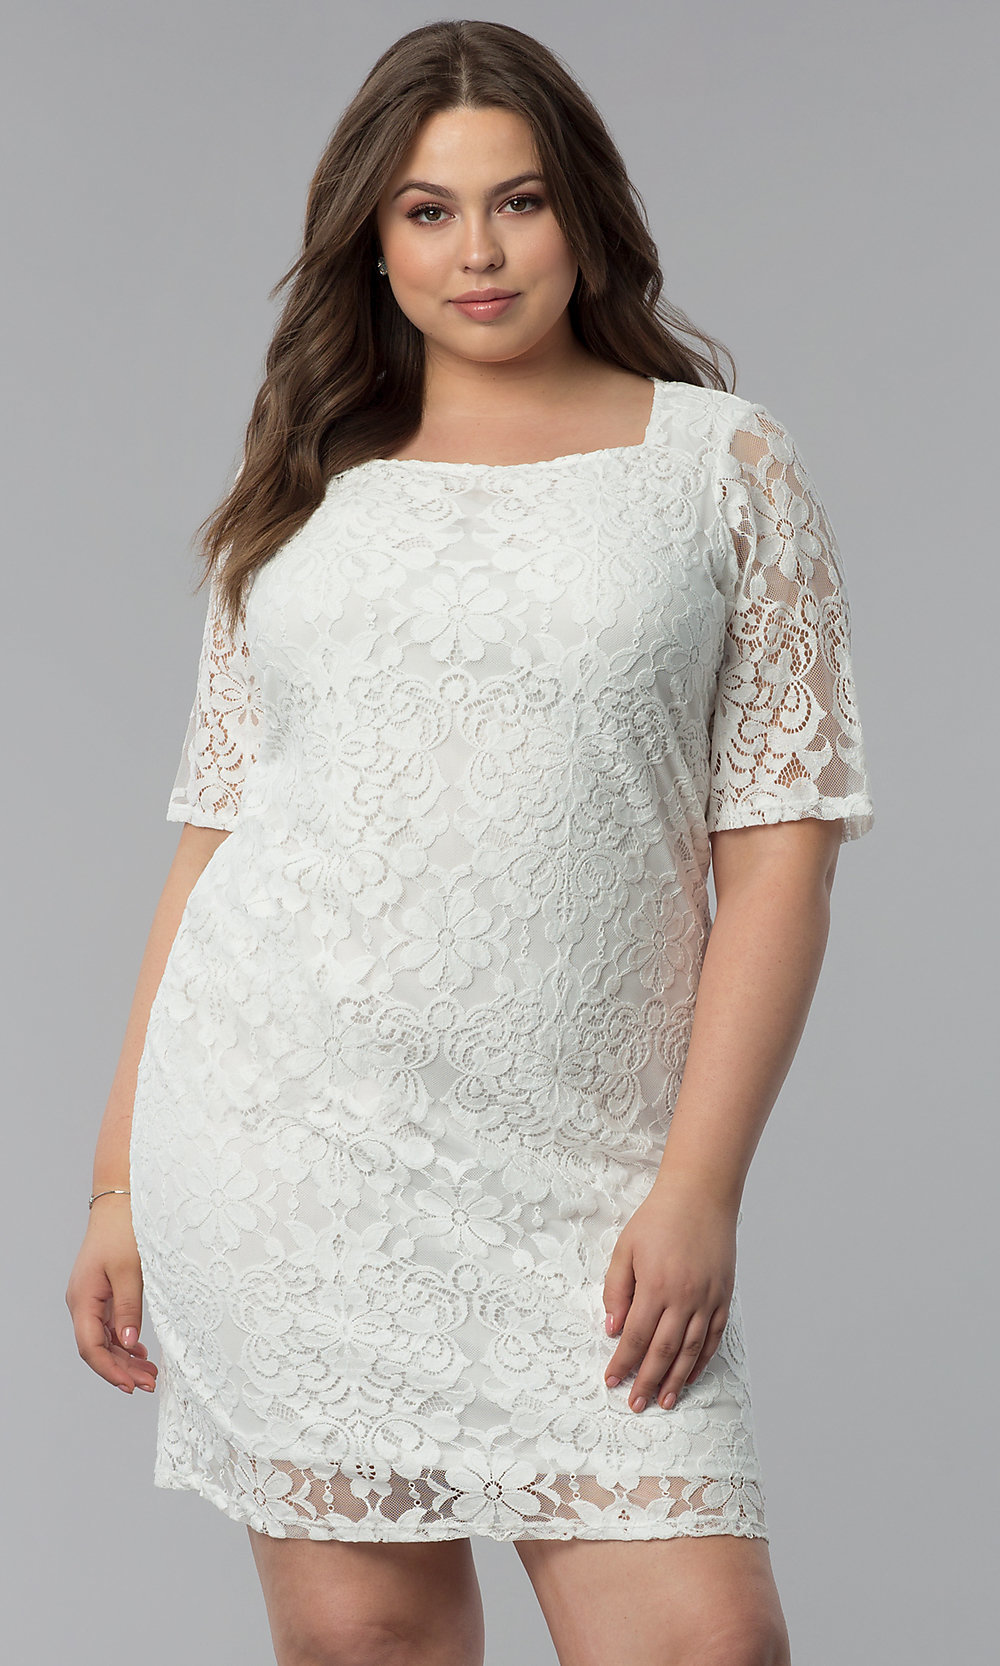 Plus-Size Lace Sheath Graduation Party Dress -PromGirl